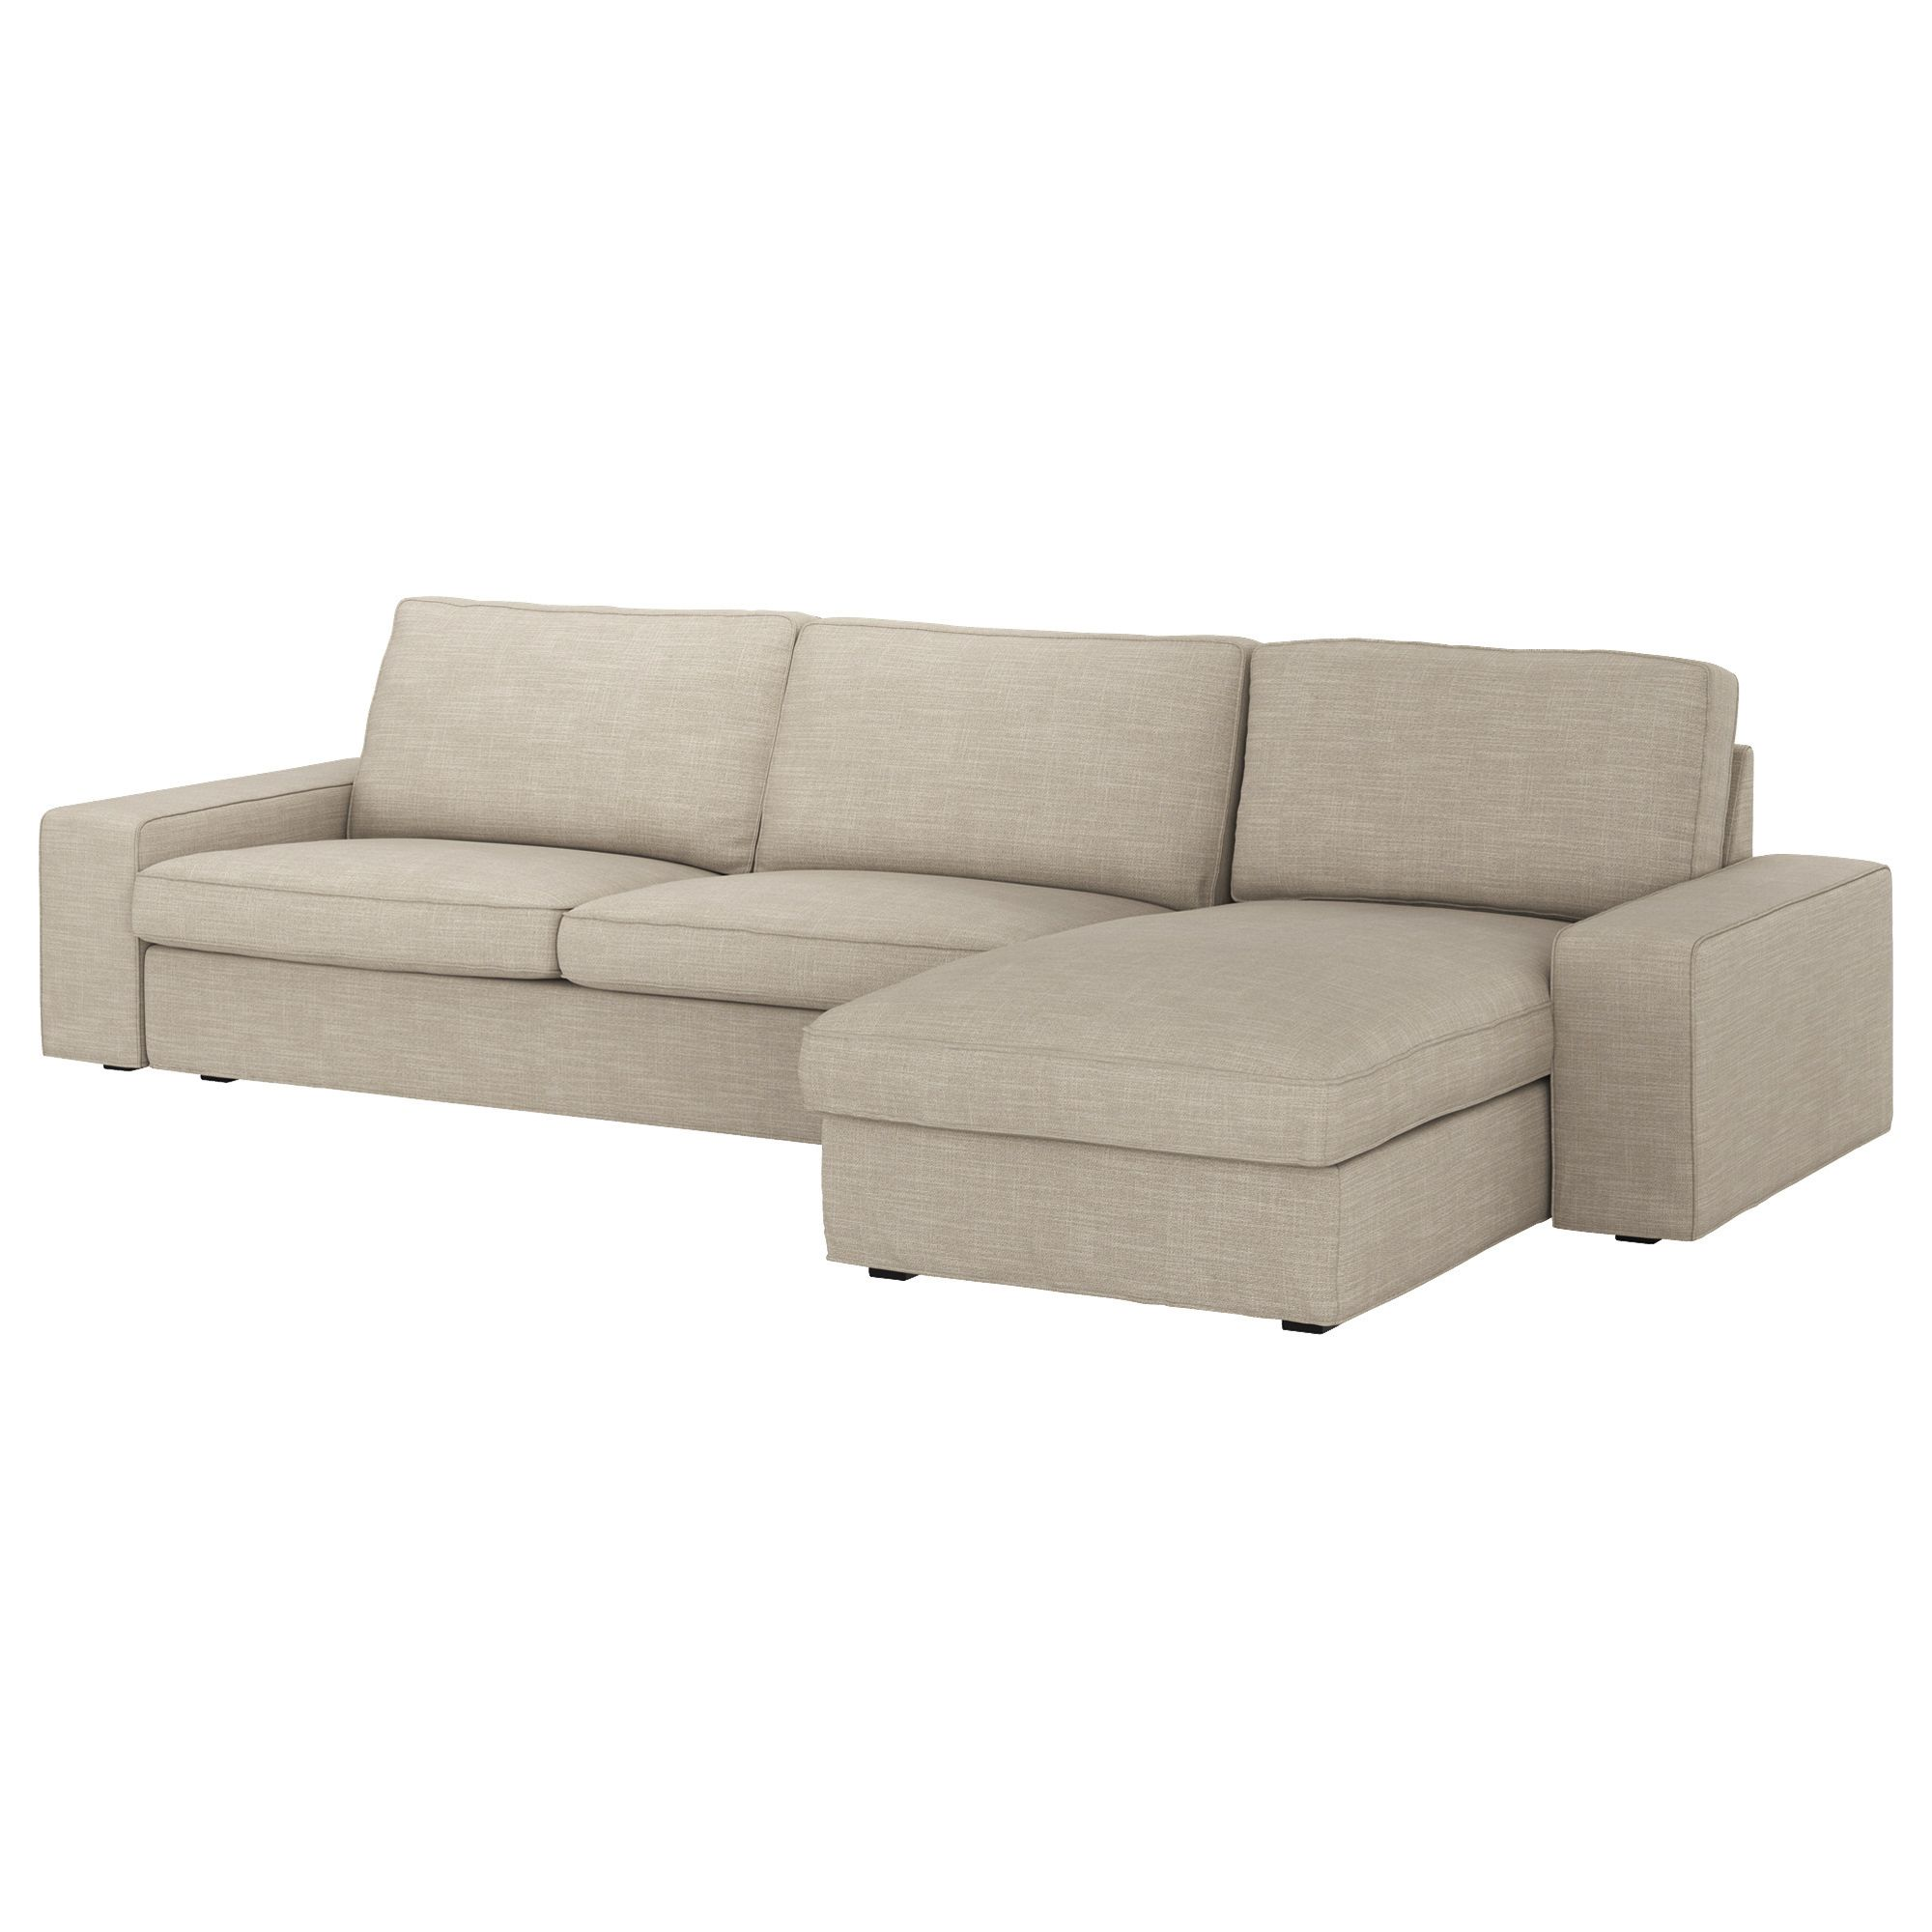 Erin Sofa Collection Havertys Furniture Pinterest